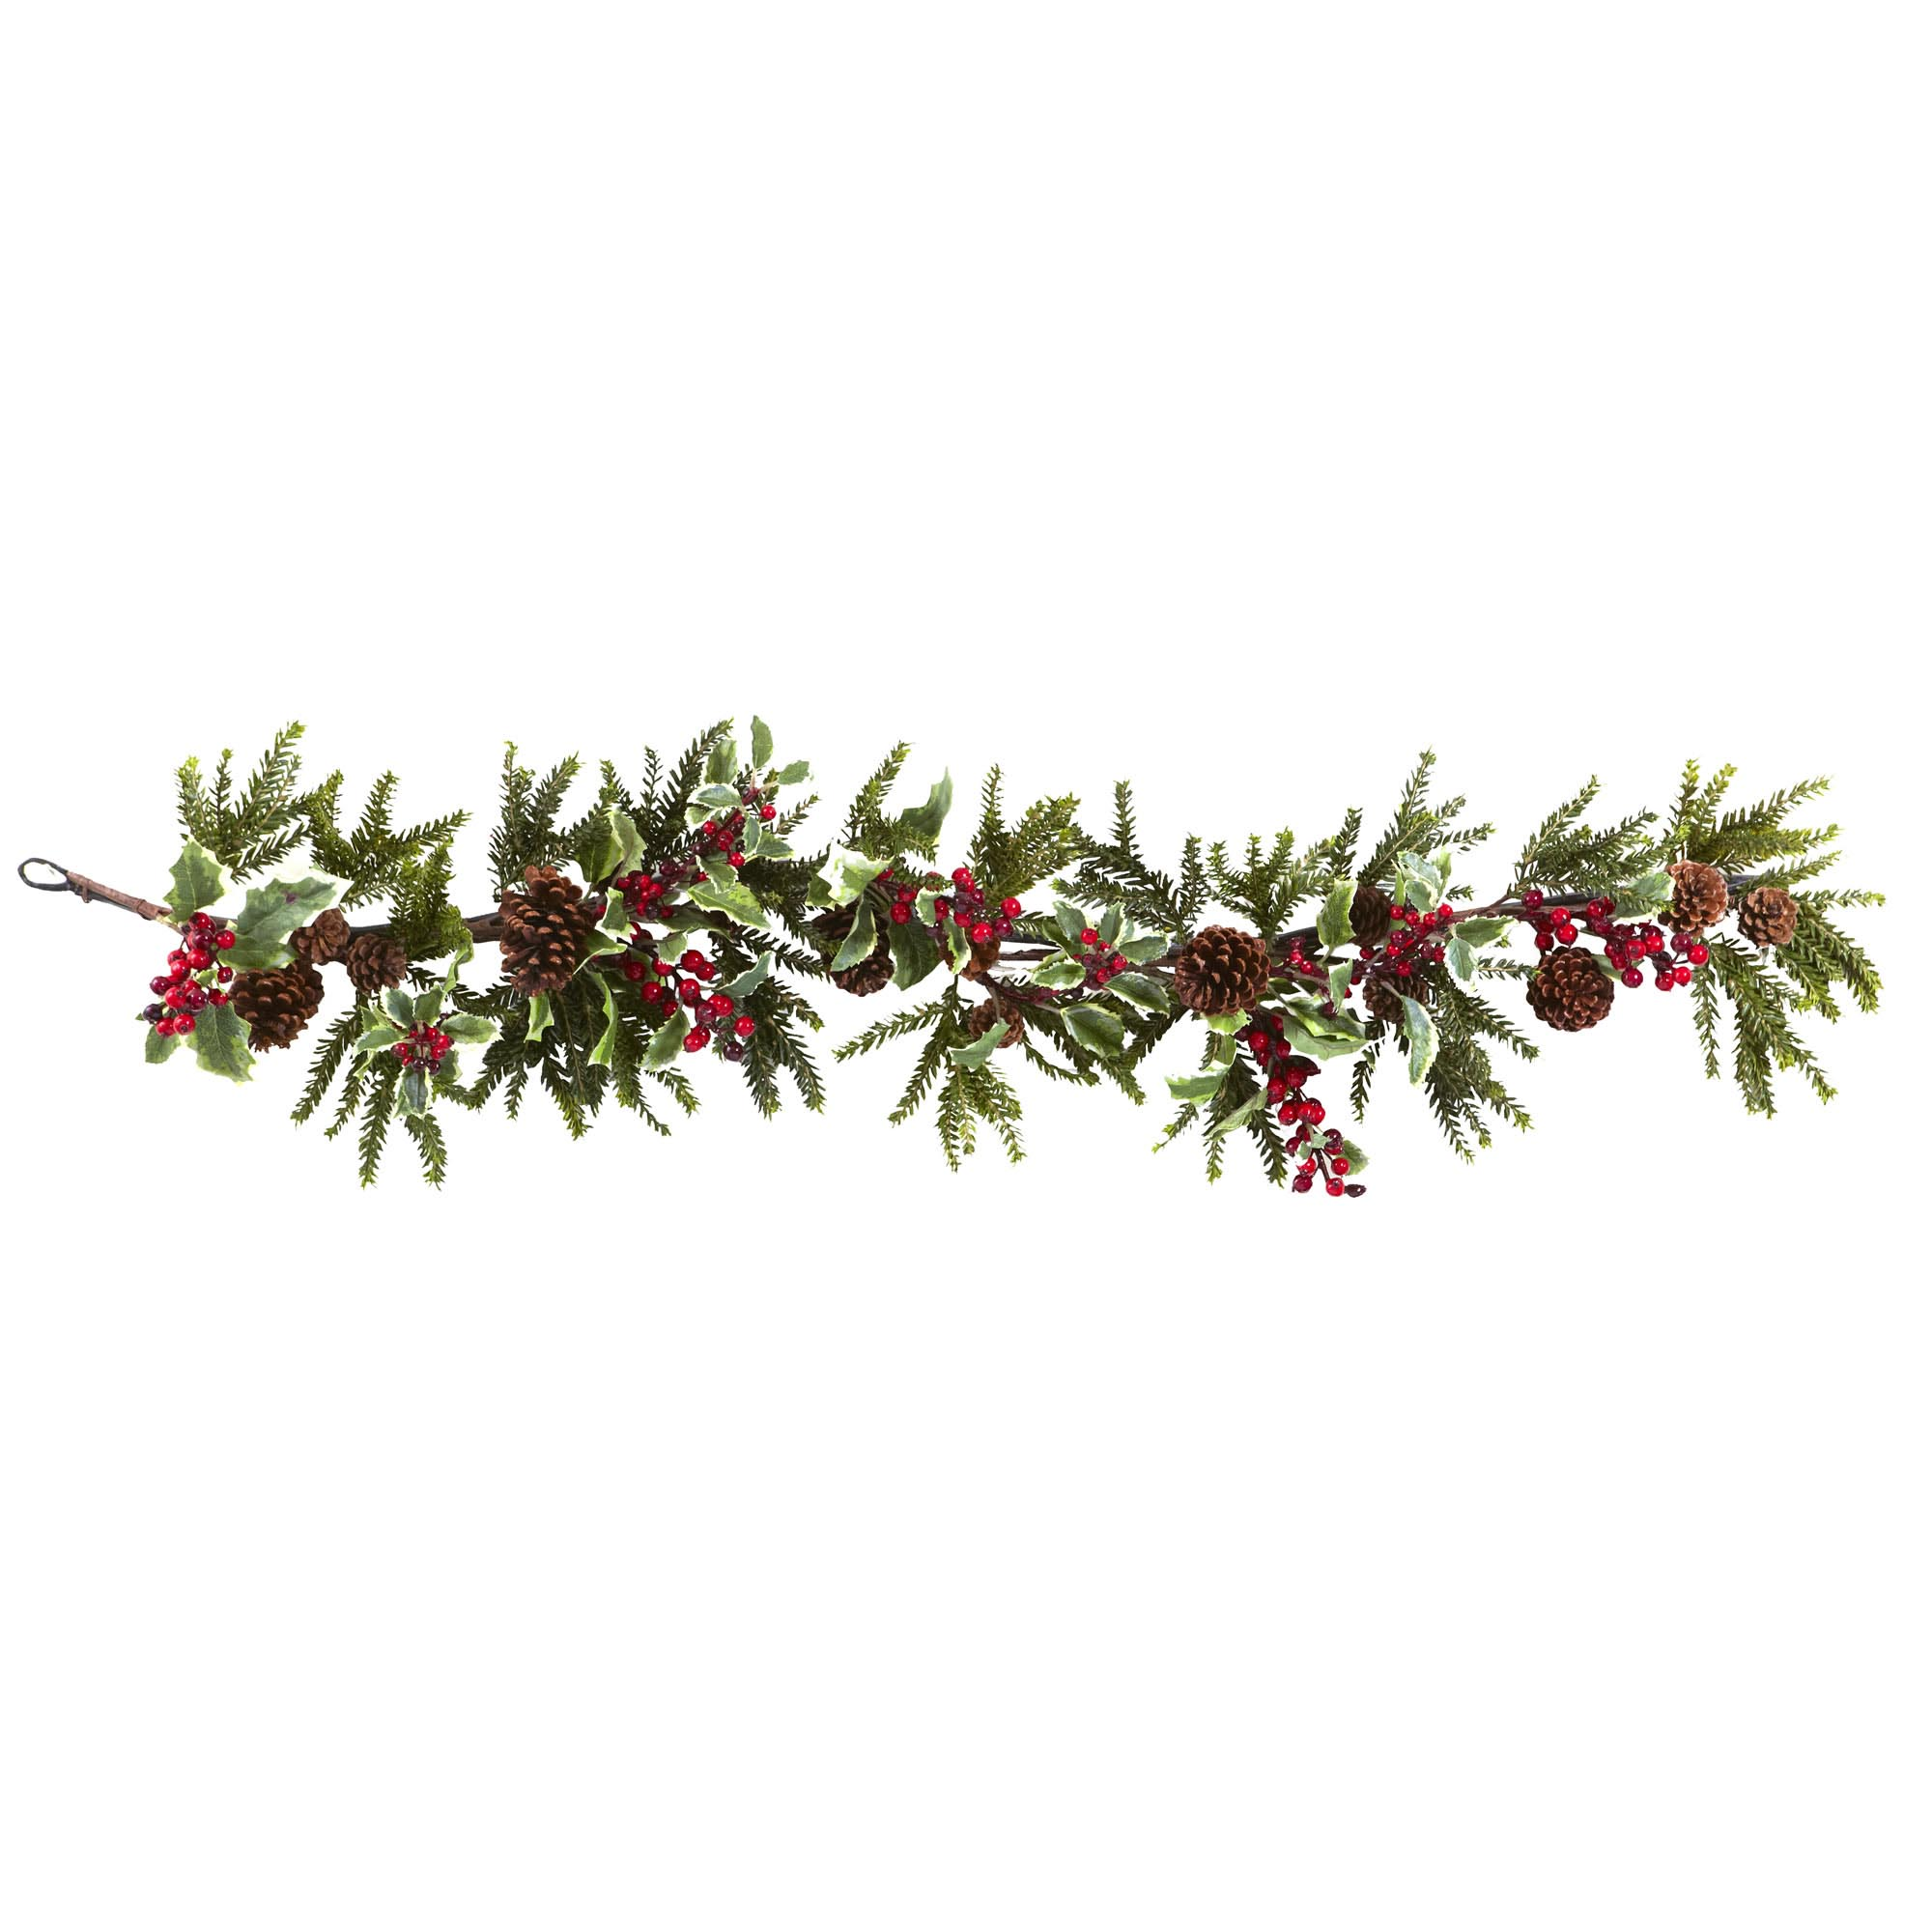 Holly Garland Png - Free Holly Garland Png, Download Free Clip Art, Free Clip Art on ...